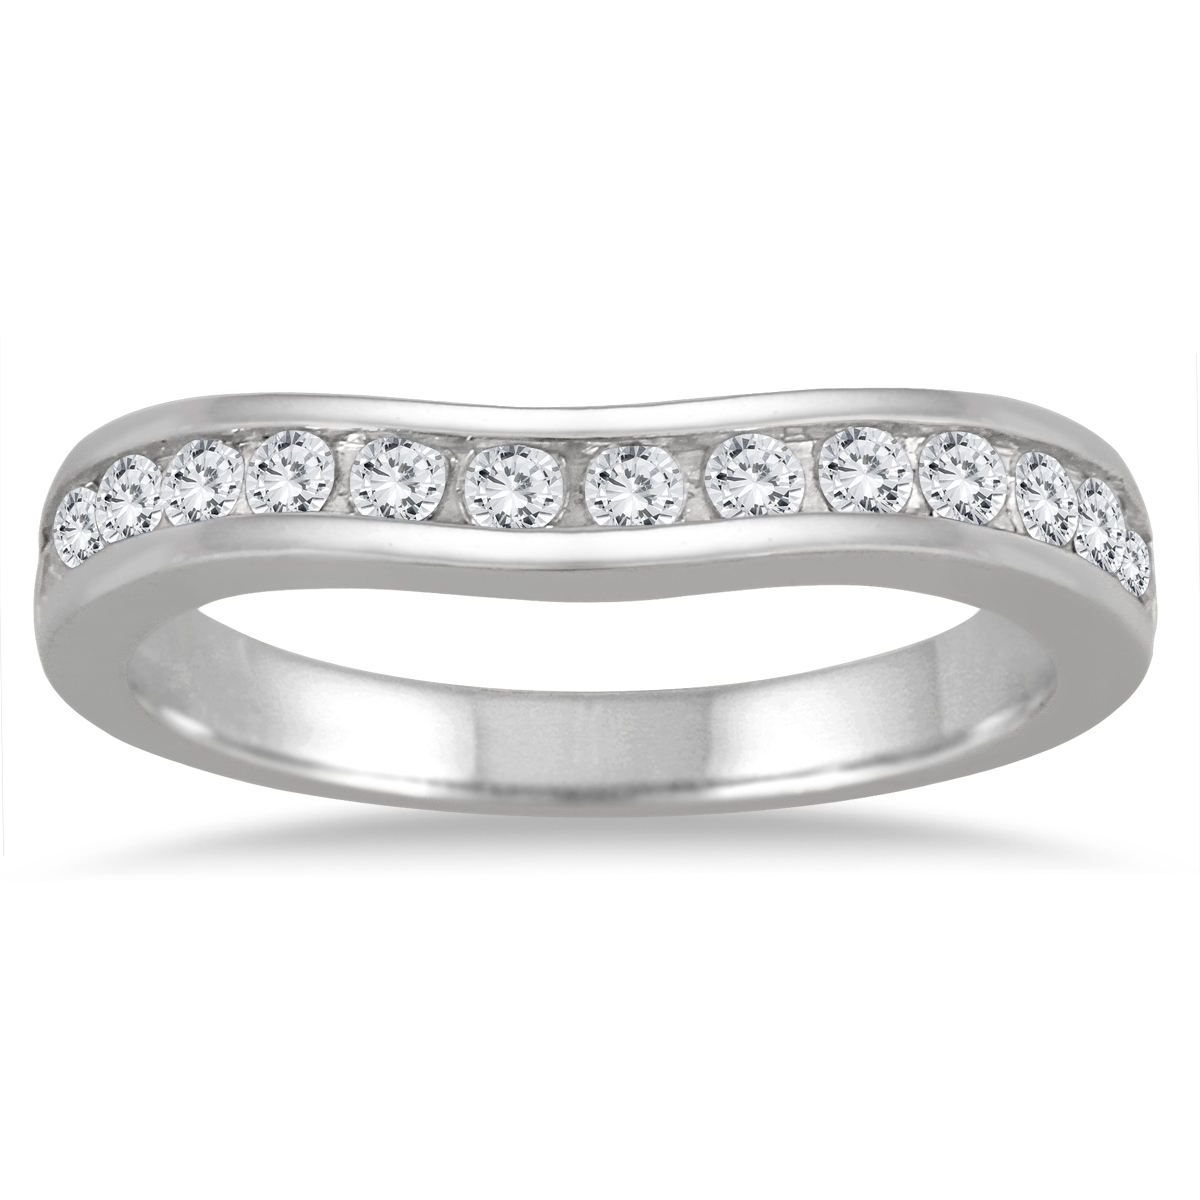 1/2 Carat TW Diamond Channel Set Curved Band in 10K White Gold